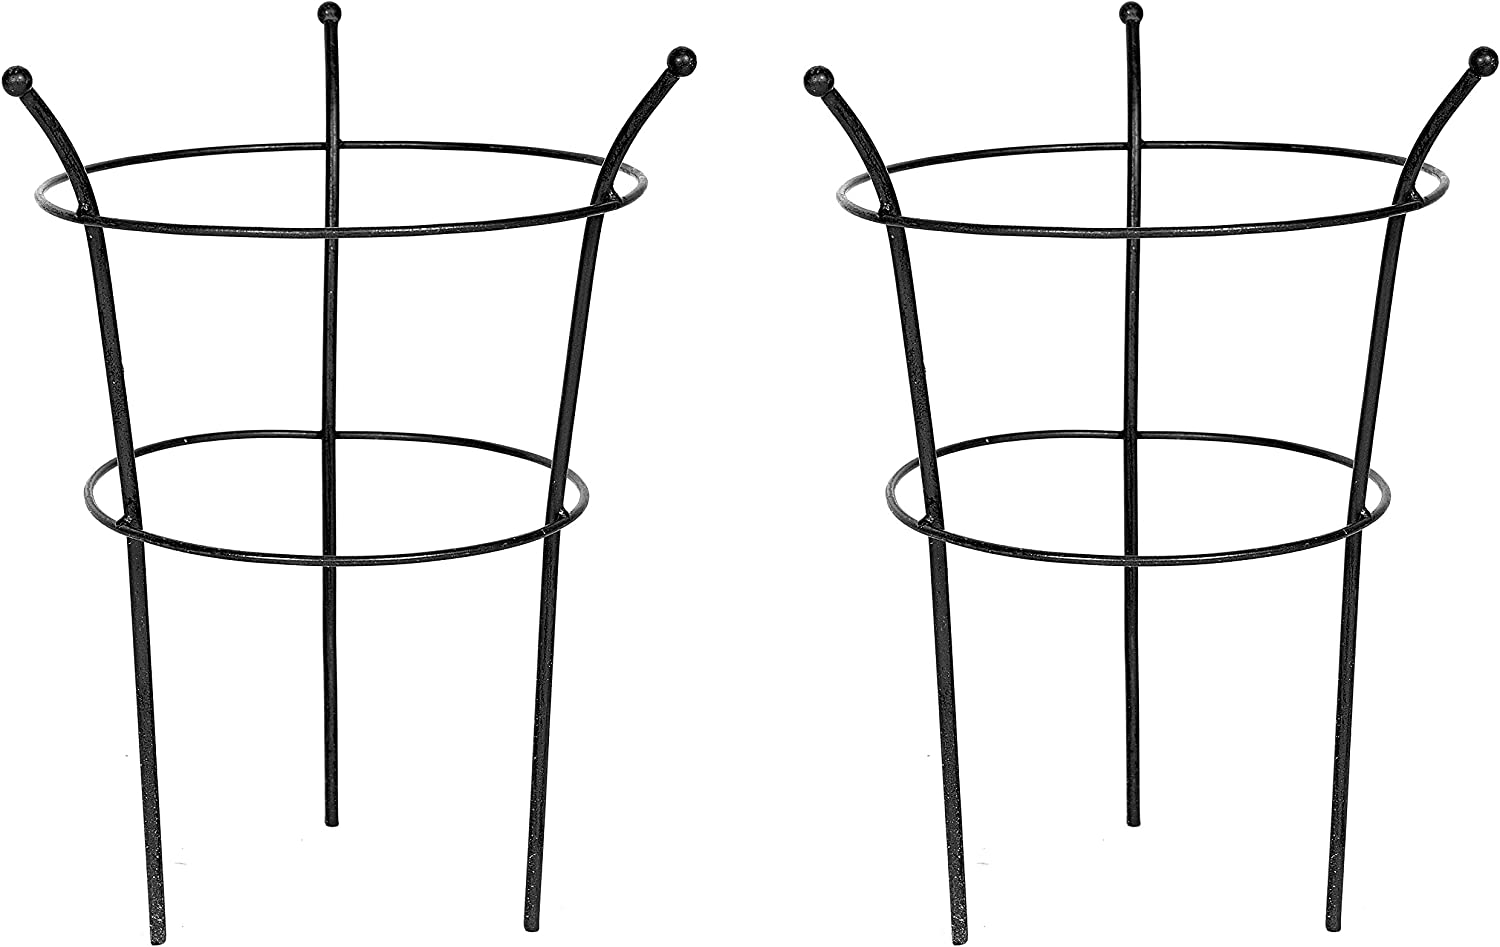 Ruddings Wood Set of 2 x Black Metal Garden Peony Herbaceous Plant Supports Cage Frame Rings 45cm high x 30cm diameter